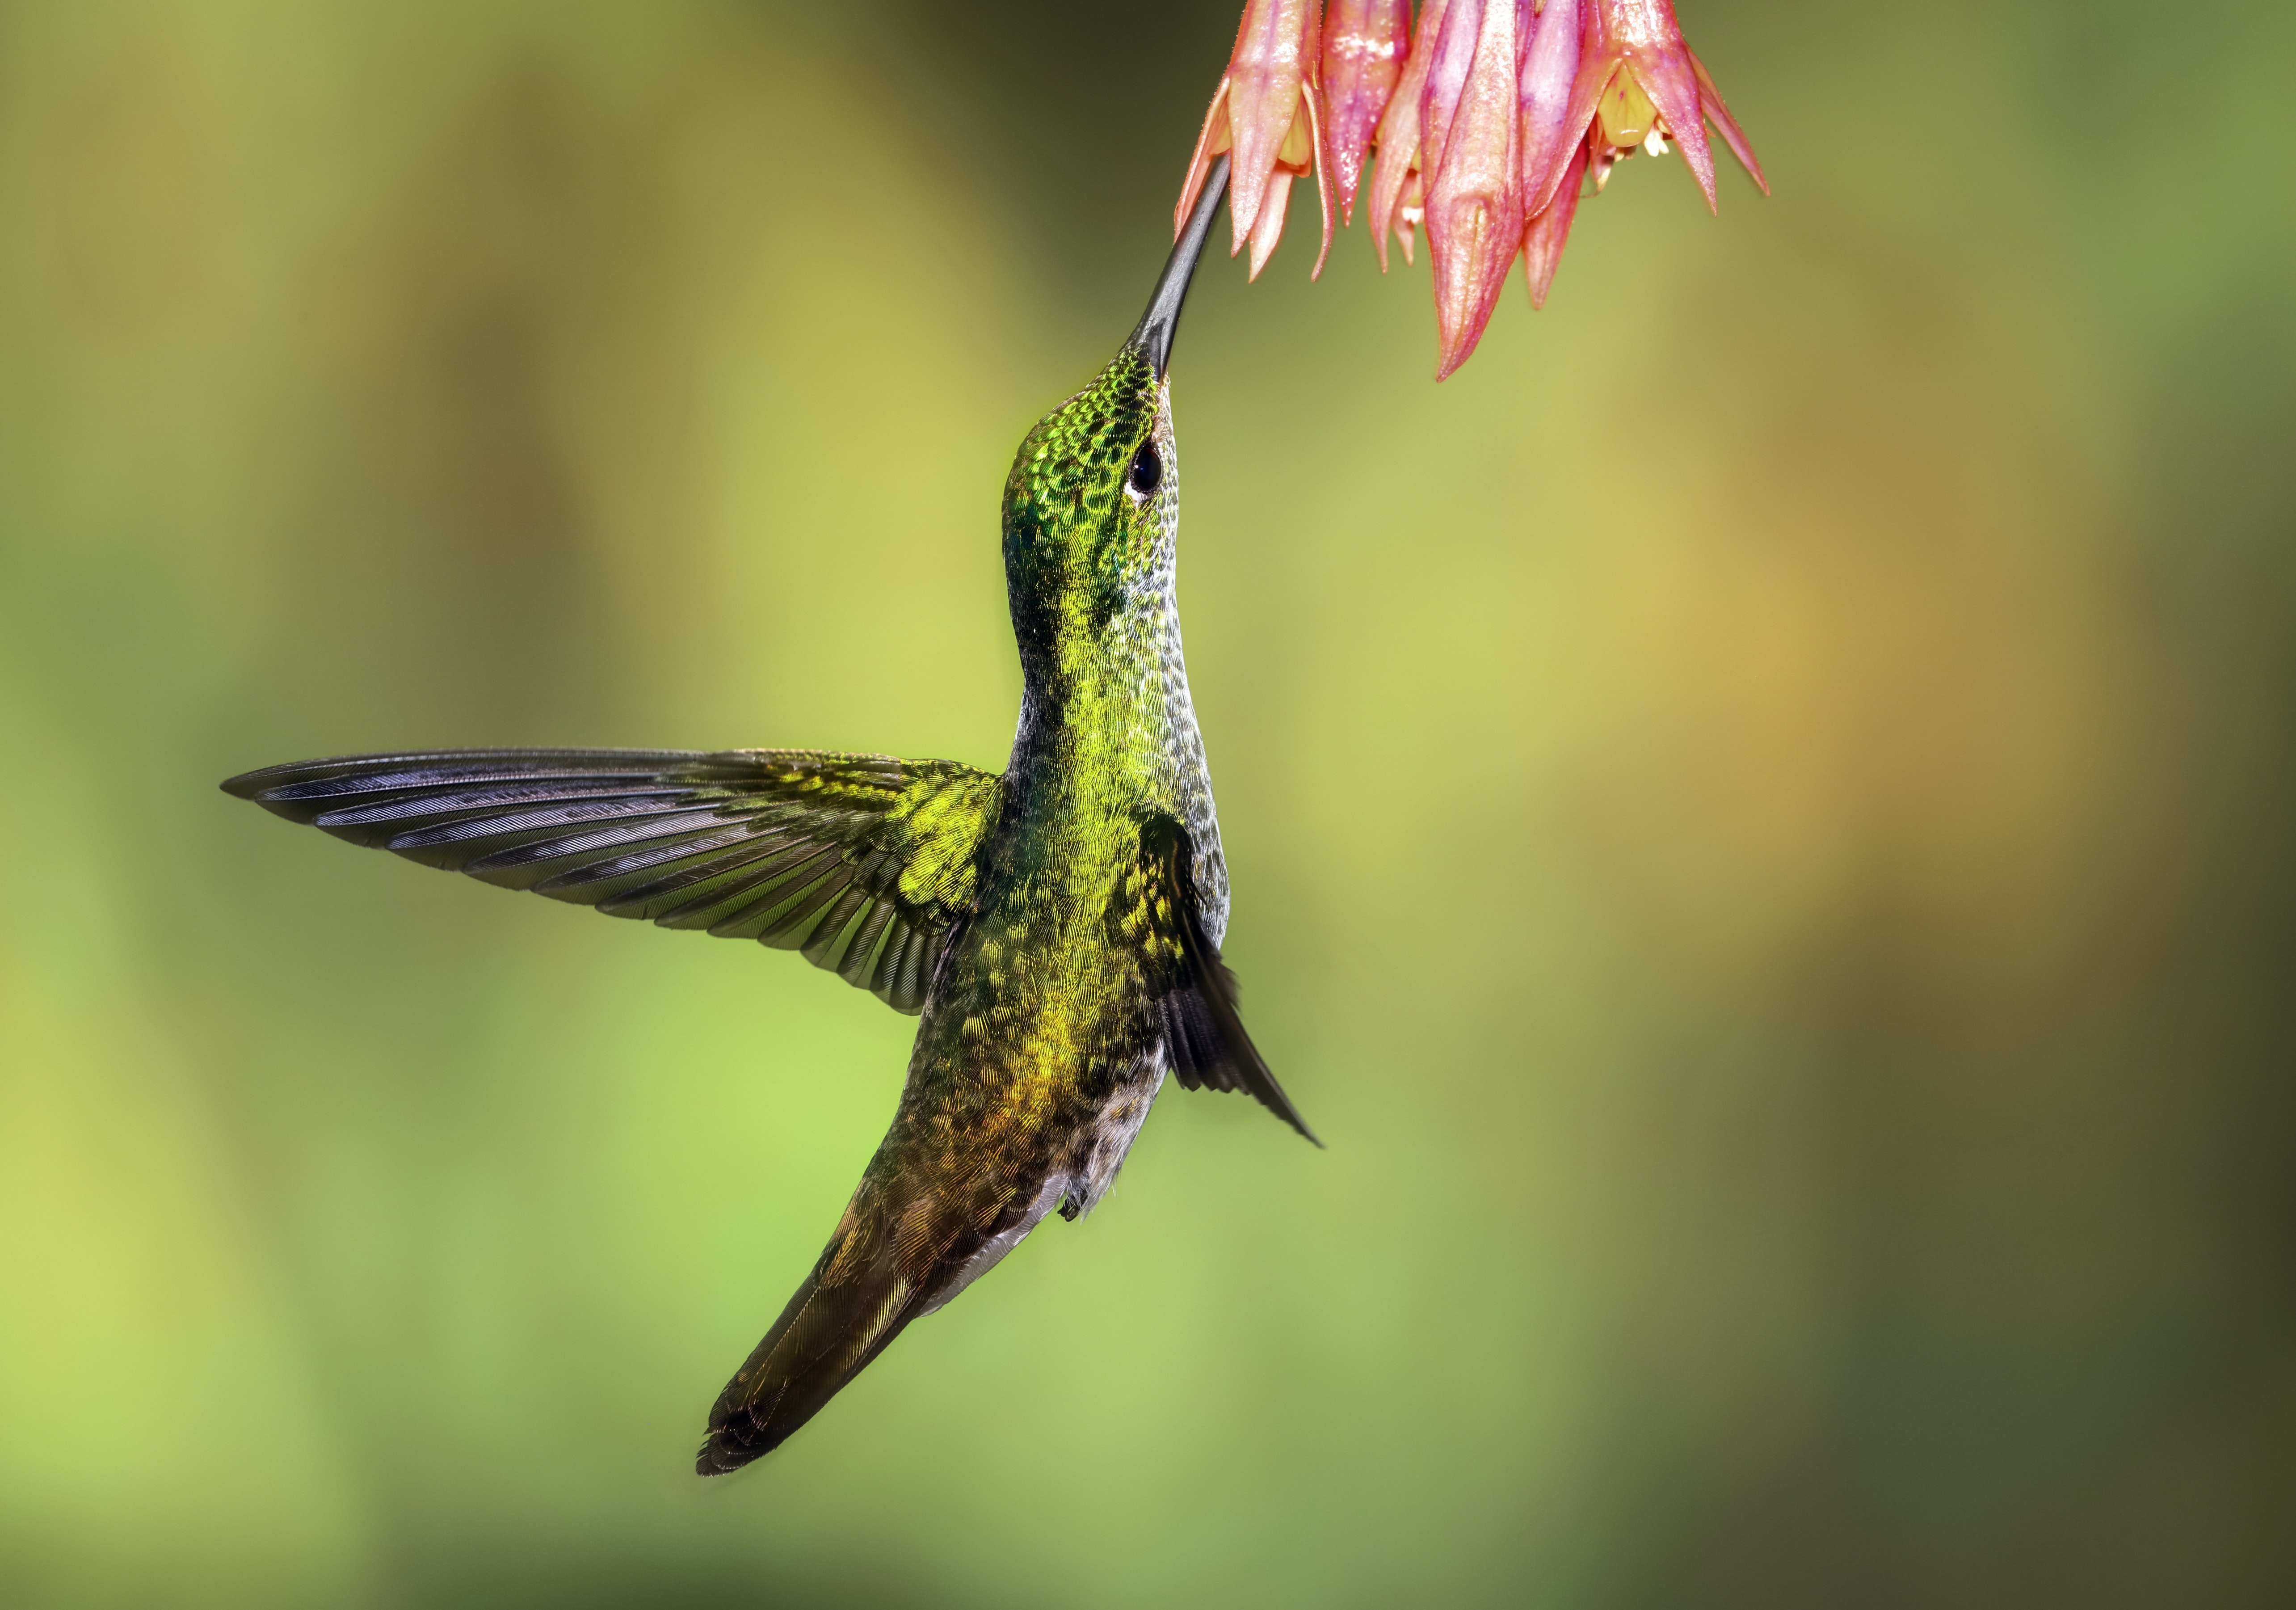 green hummingbird pollinating on pink petaled flowers